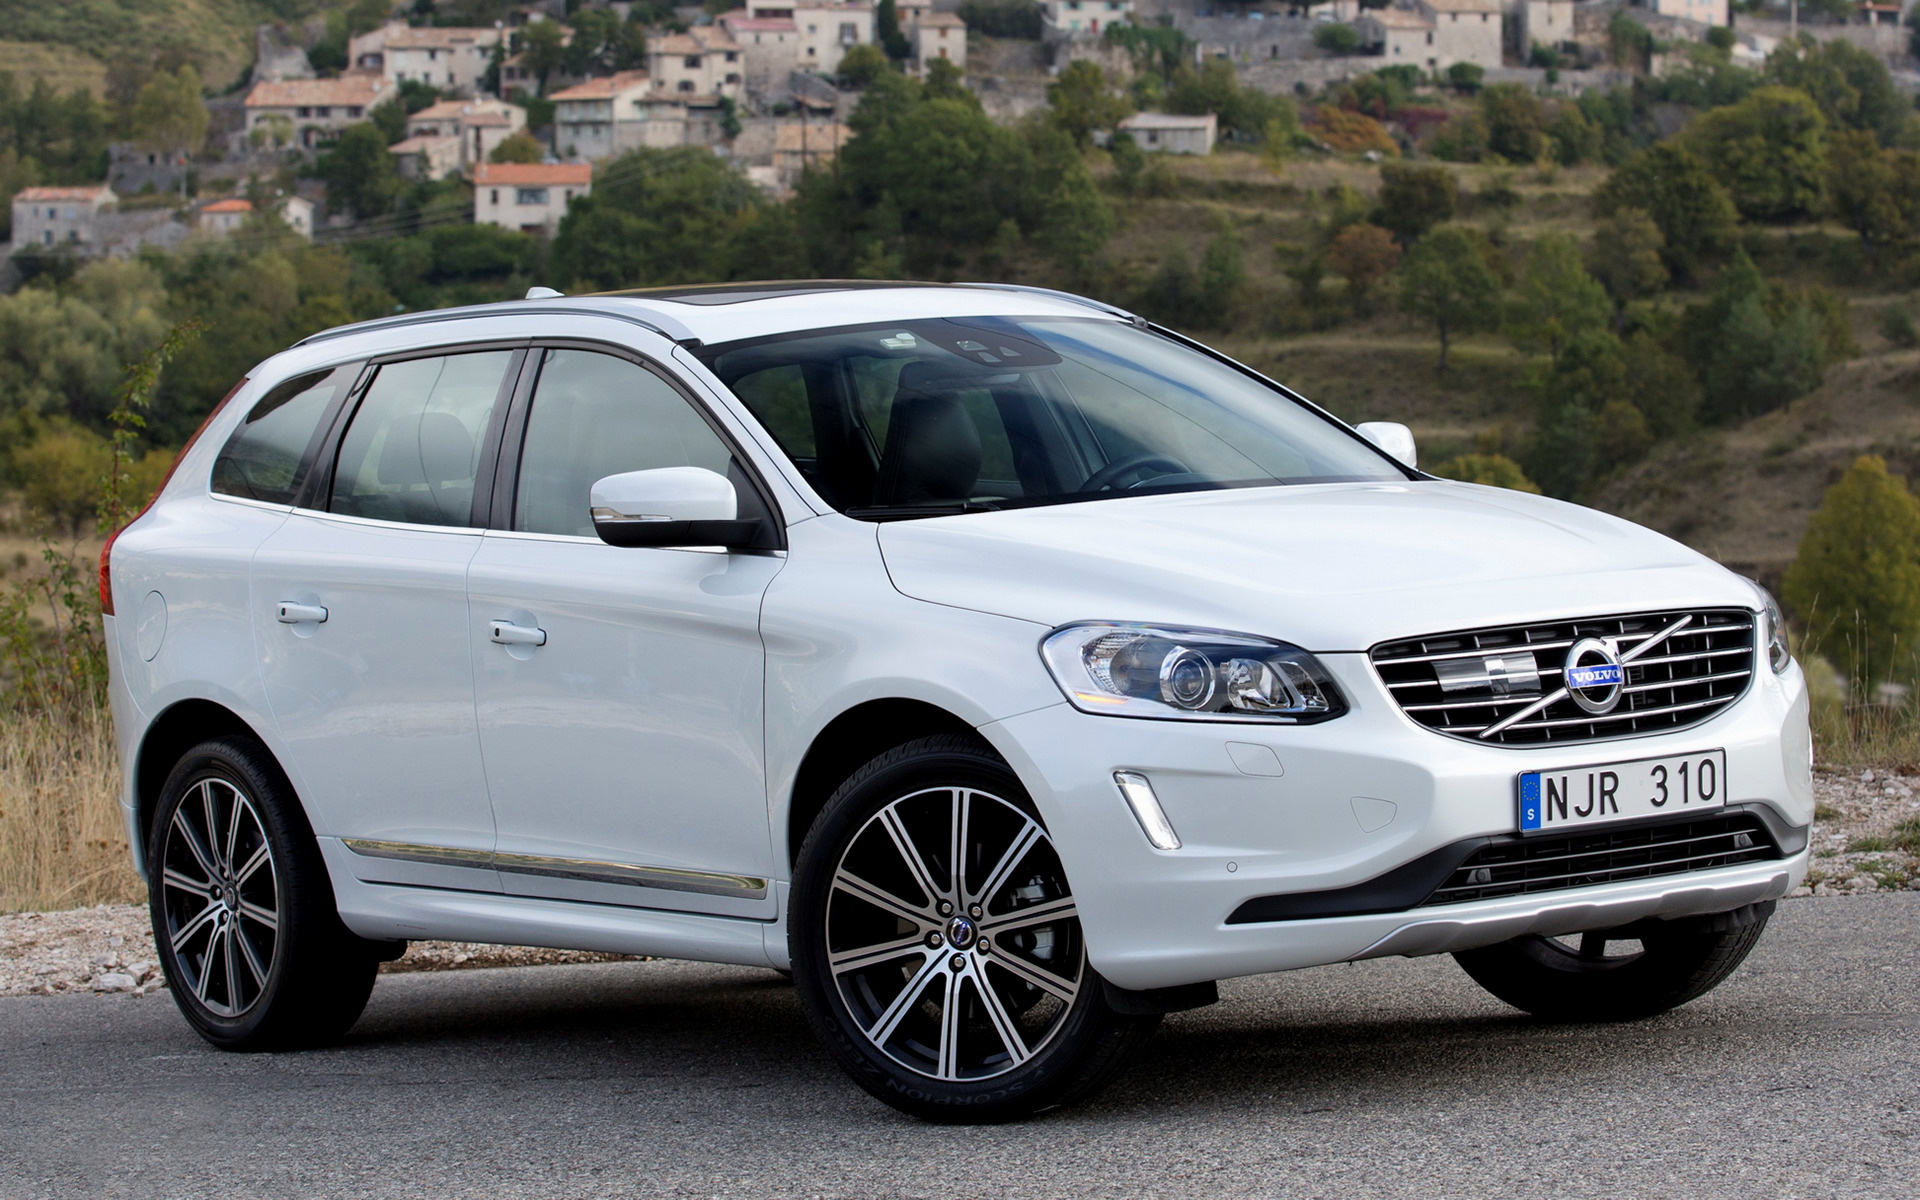 Volvo XC60 2013 Wallpapers and HD Images 1920x1200